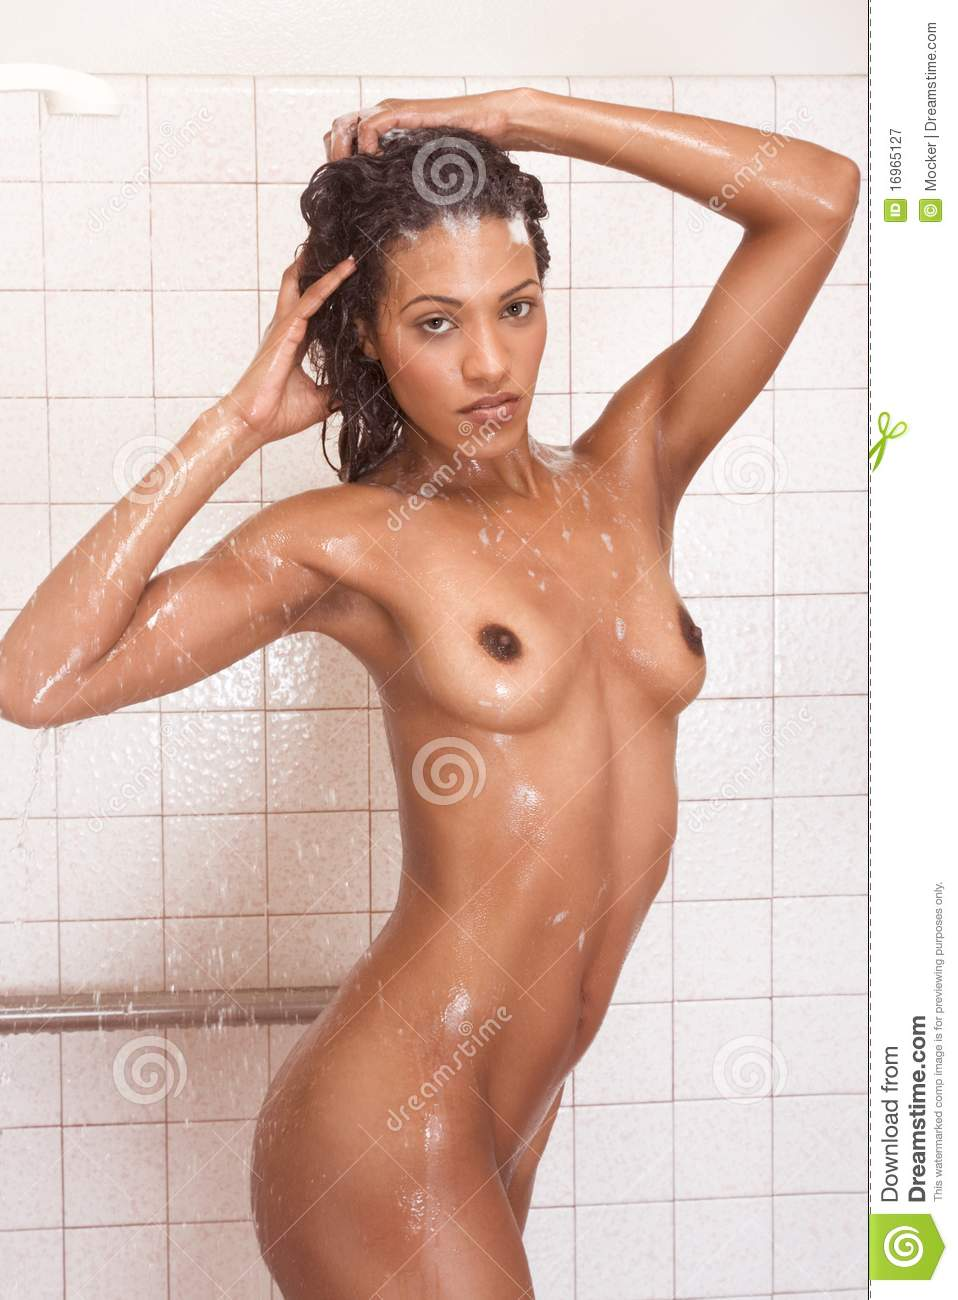 Nude Female Shower 53